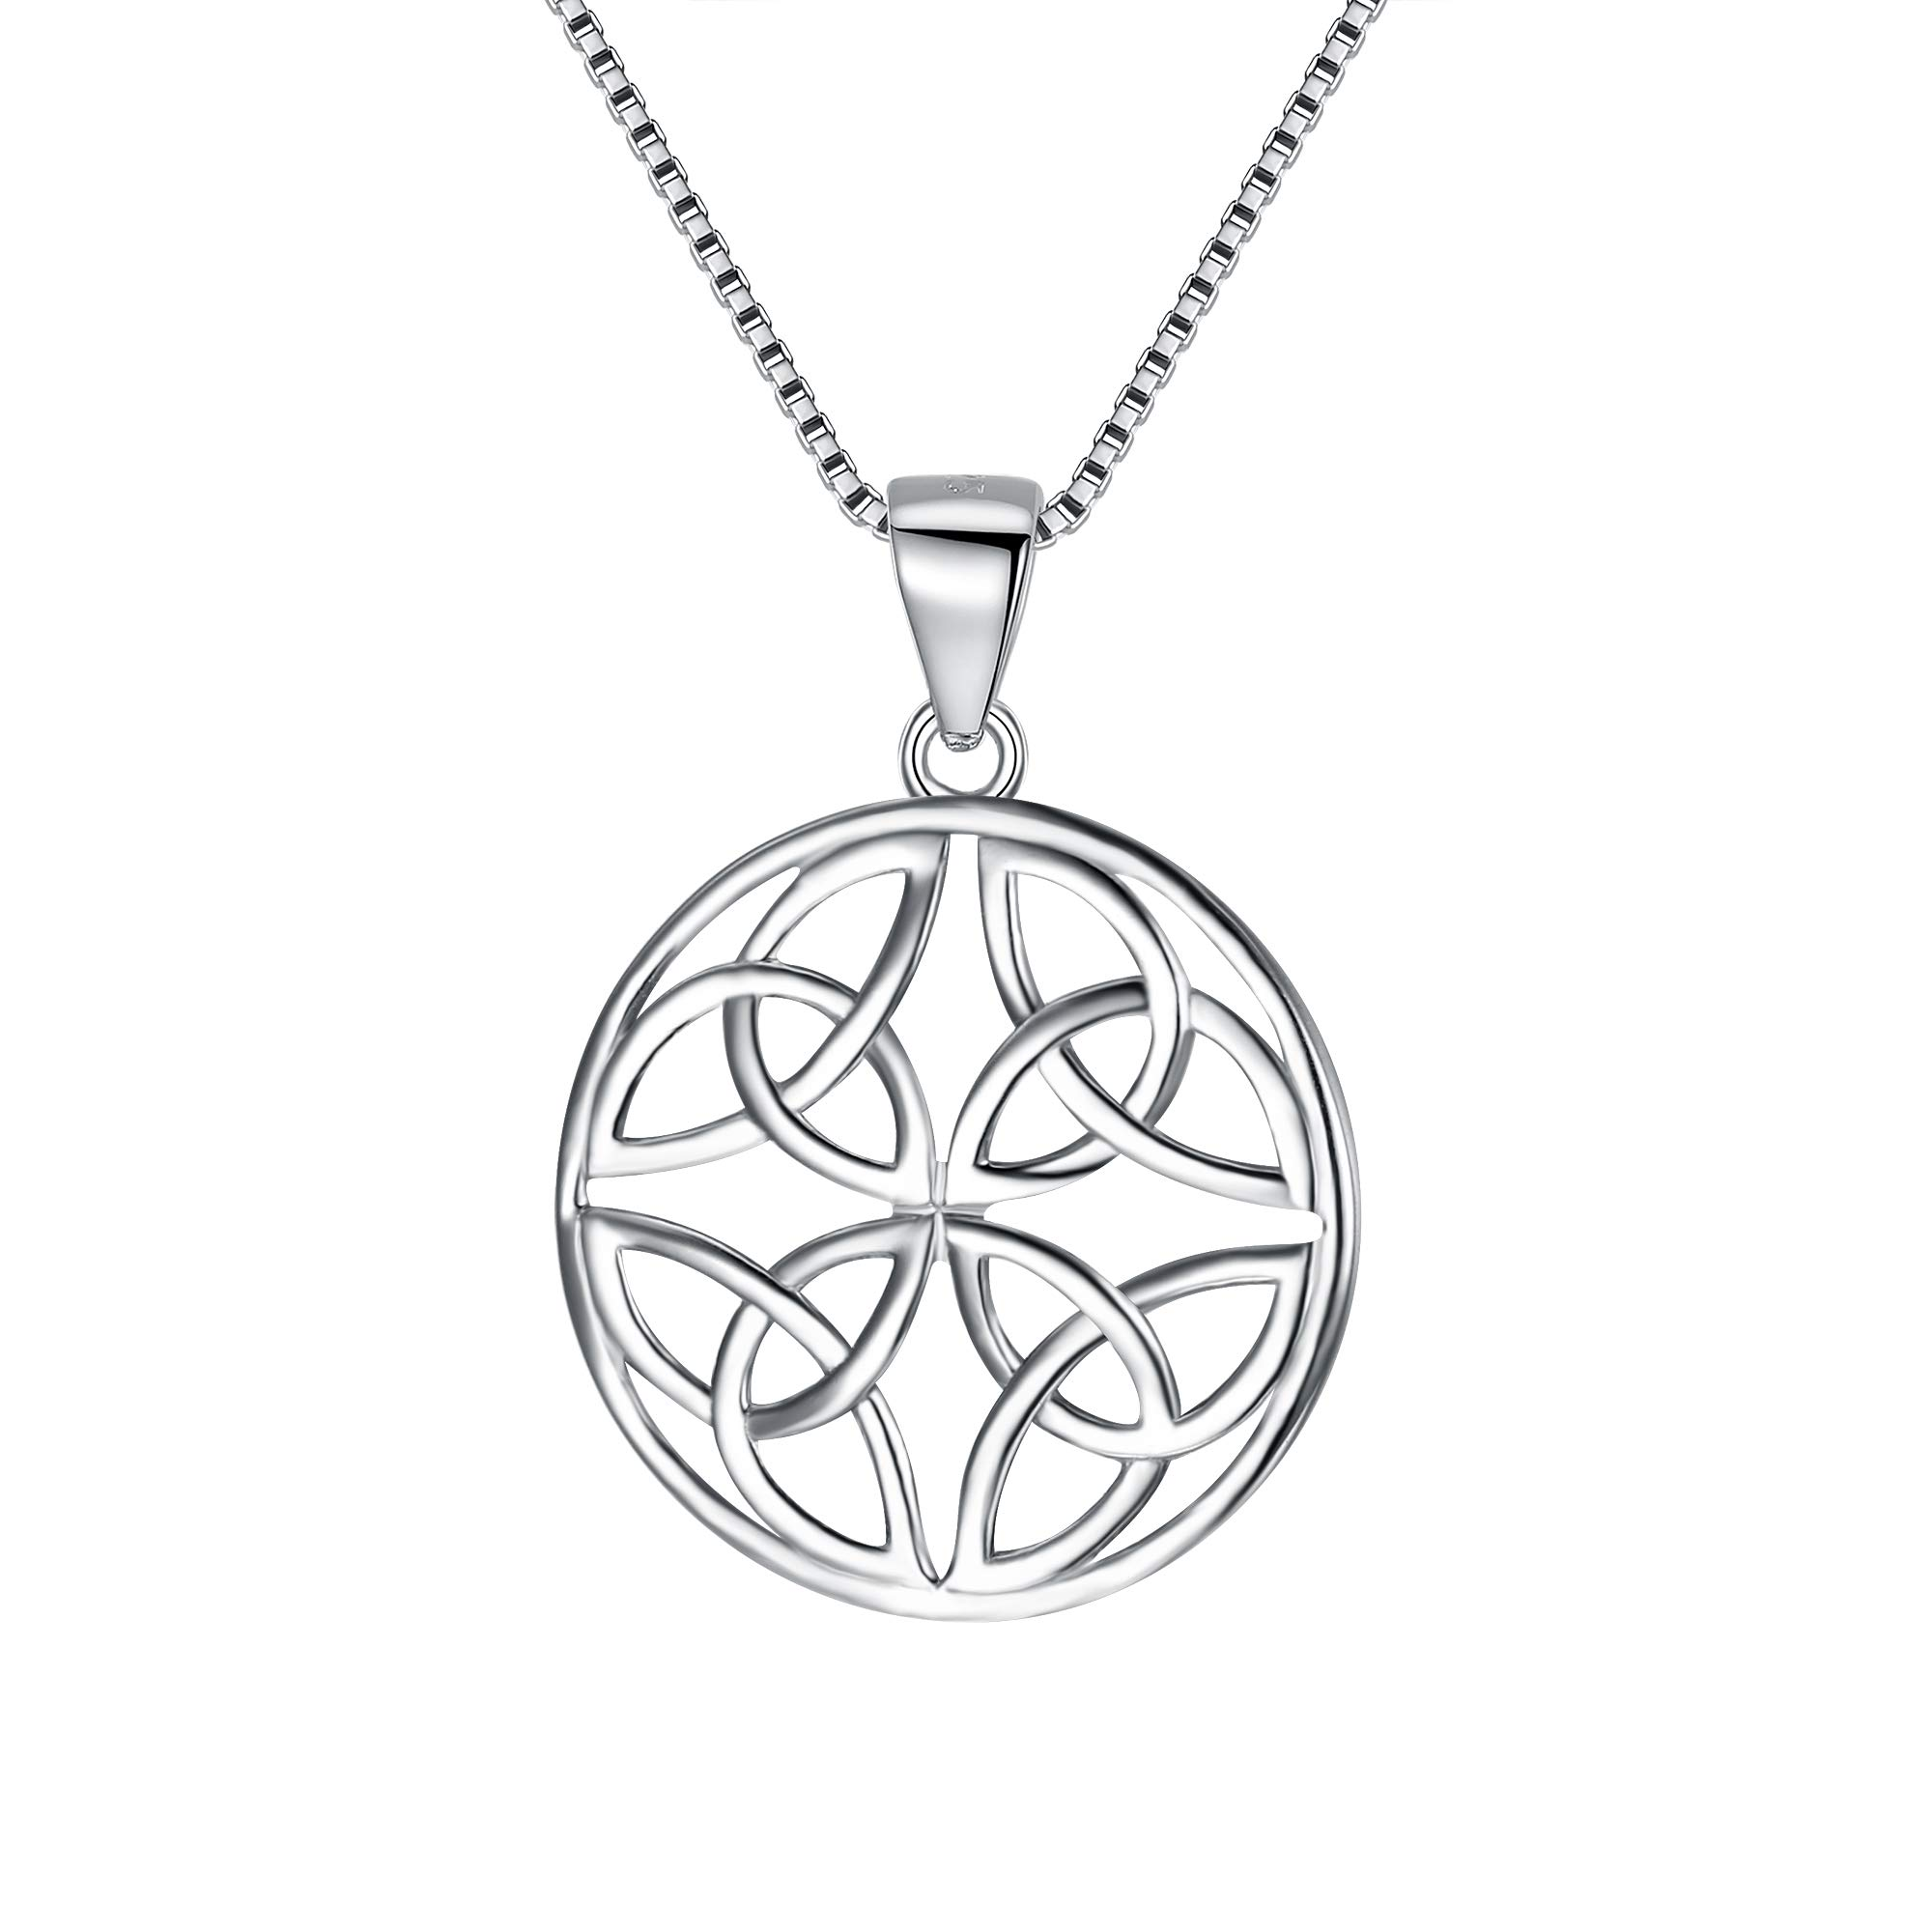 FANZE 925 Sterling Silver Celtic Knot Round Drop Wire Necklace Triquetra Trinity Medallion Pendant Necklace